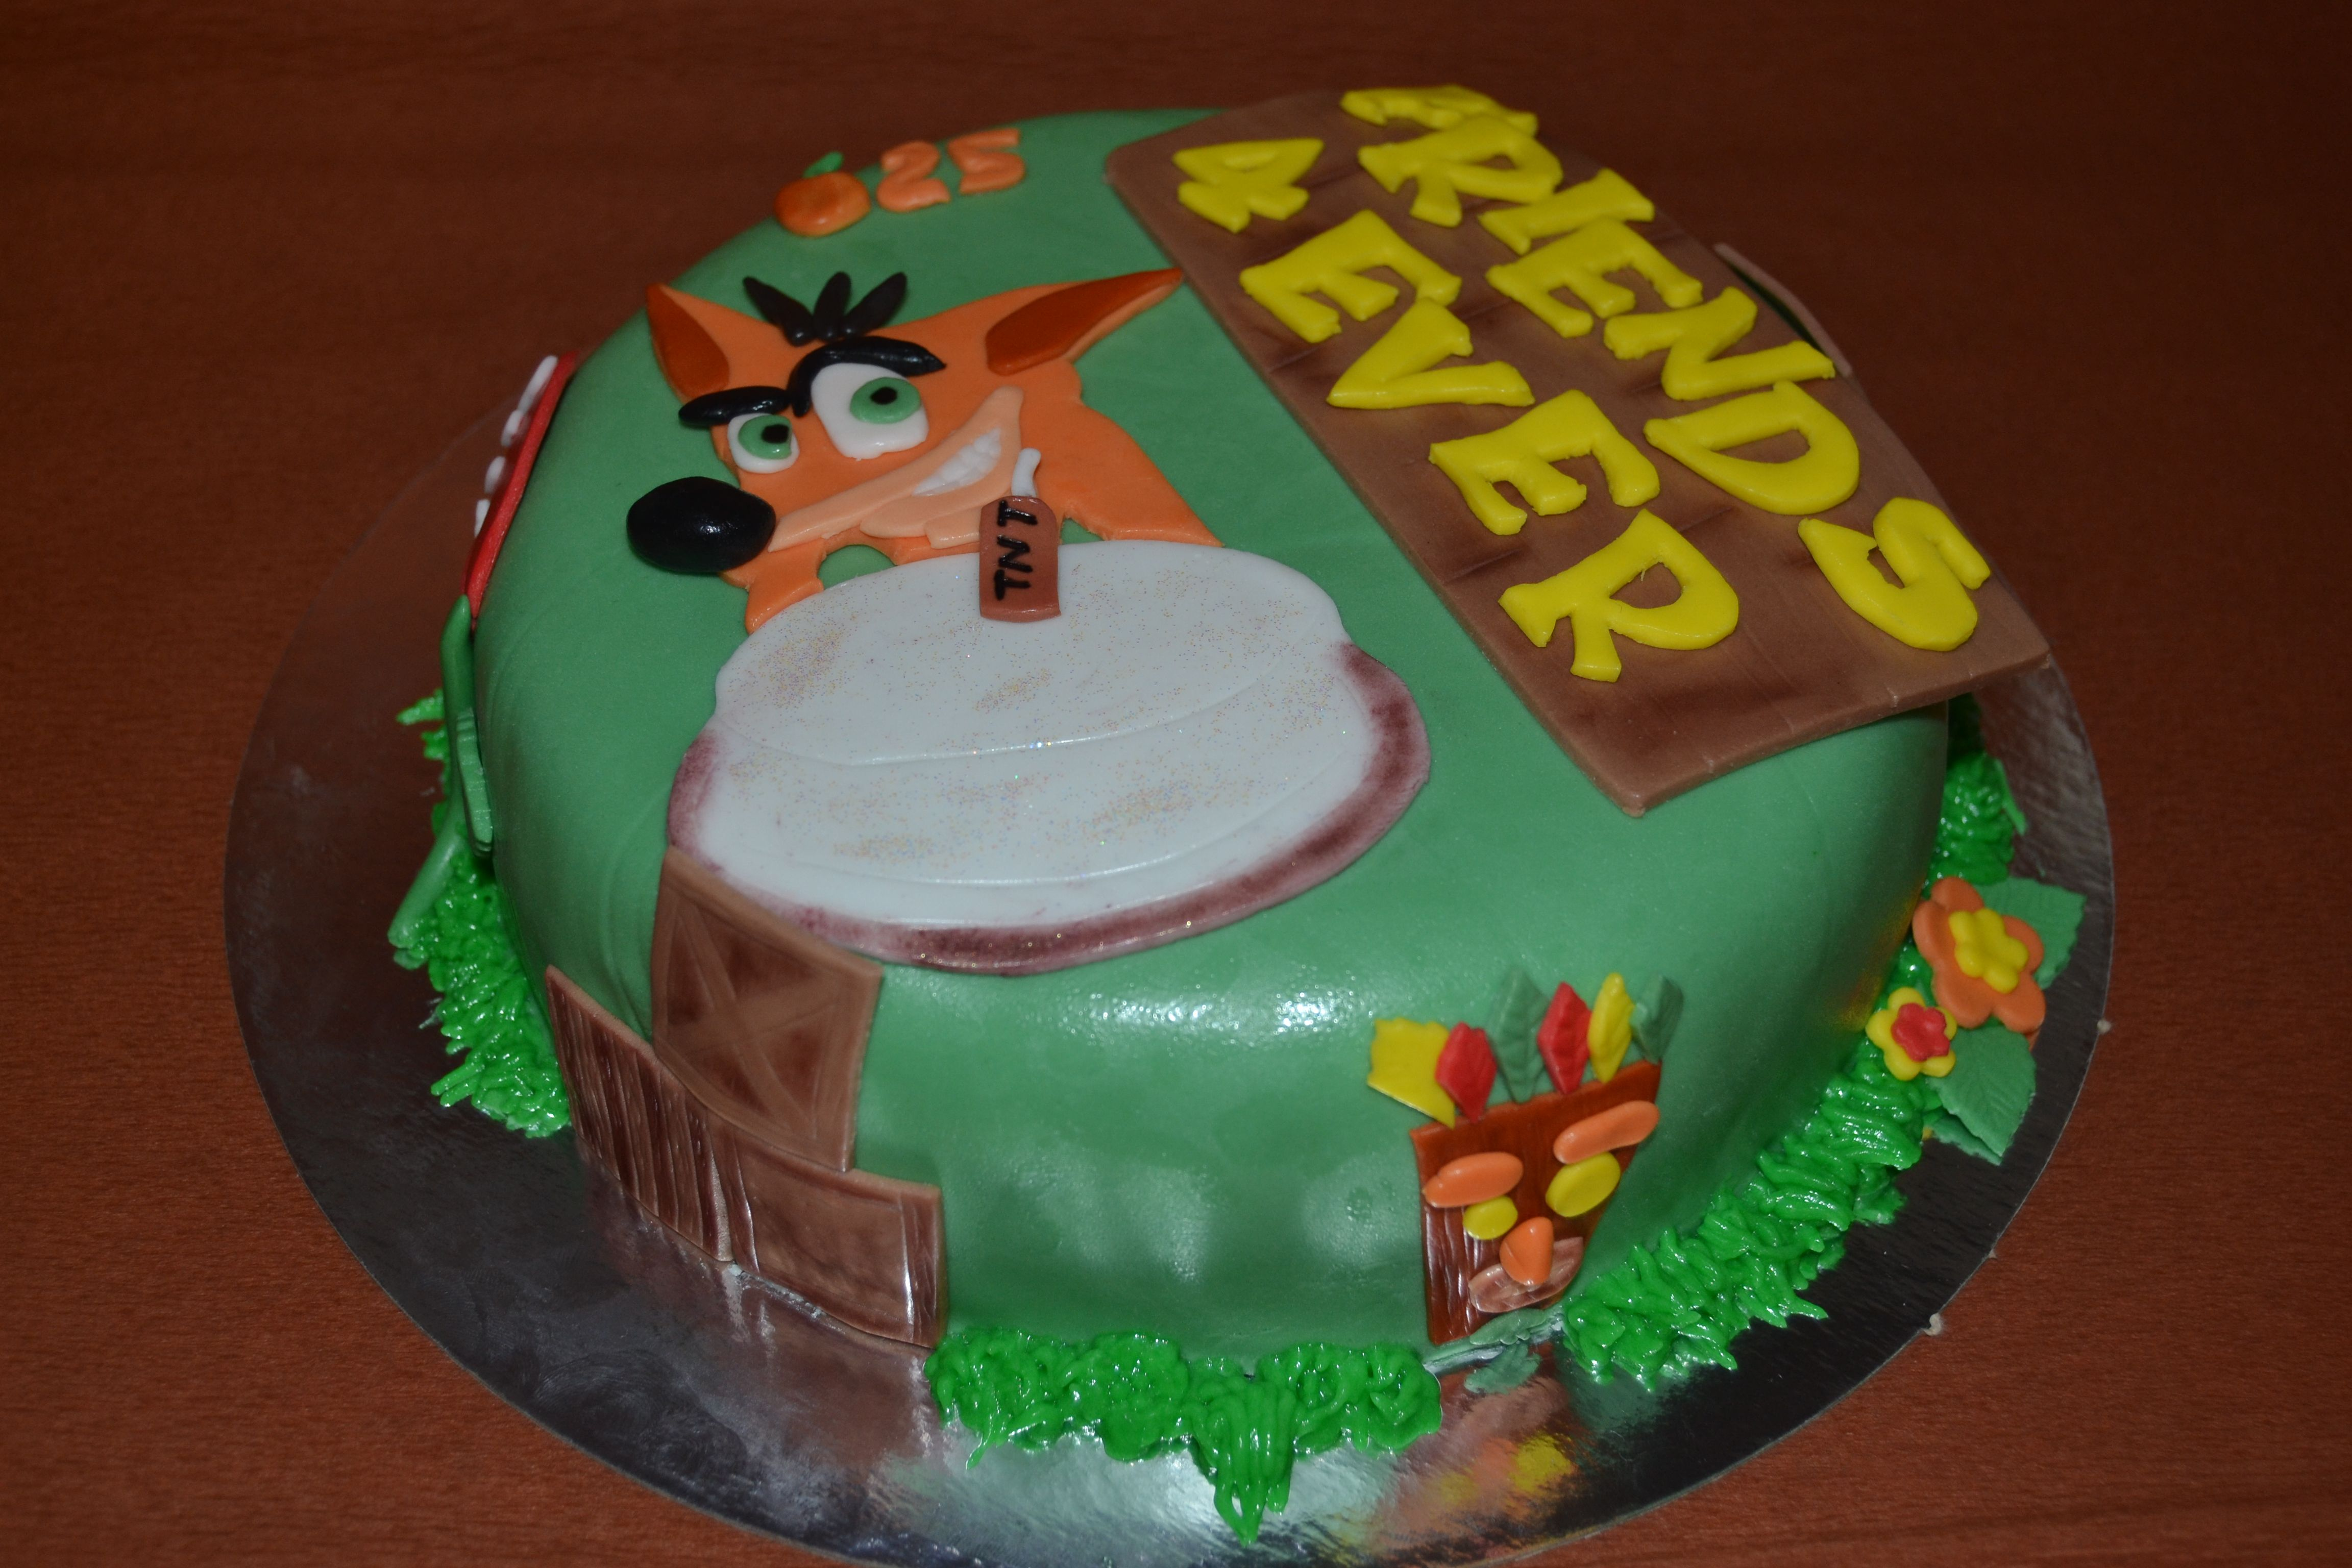 Tarta Crash Bandicoot Cake Designs Pinterest Crash Bandicoot